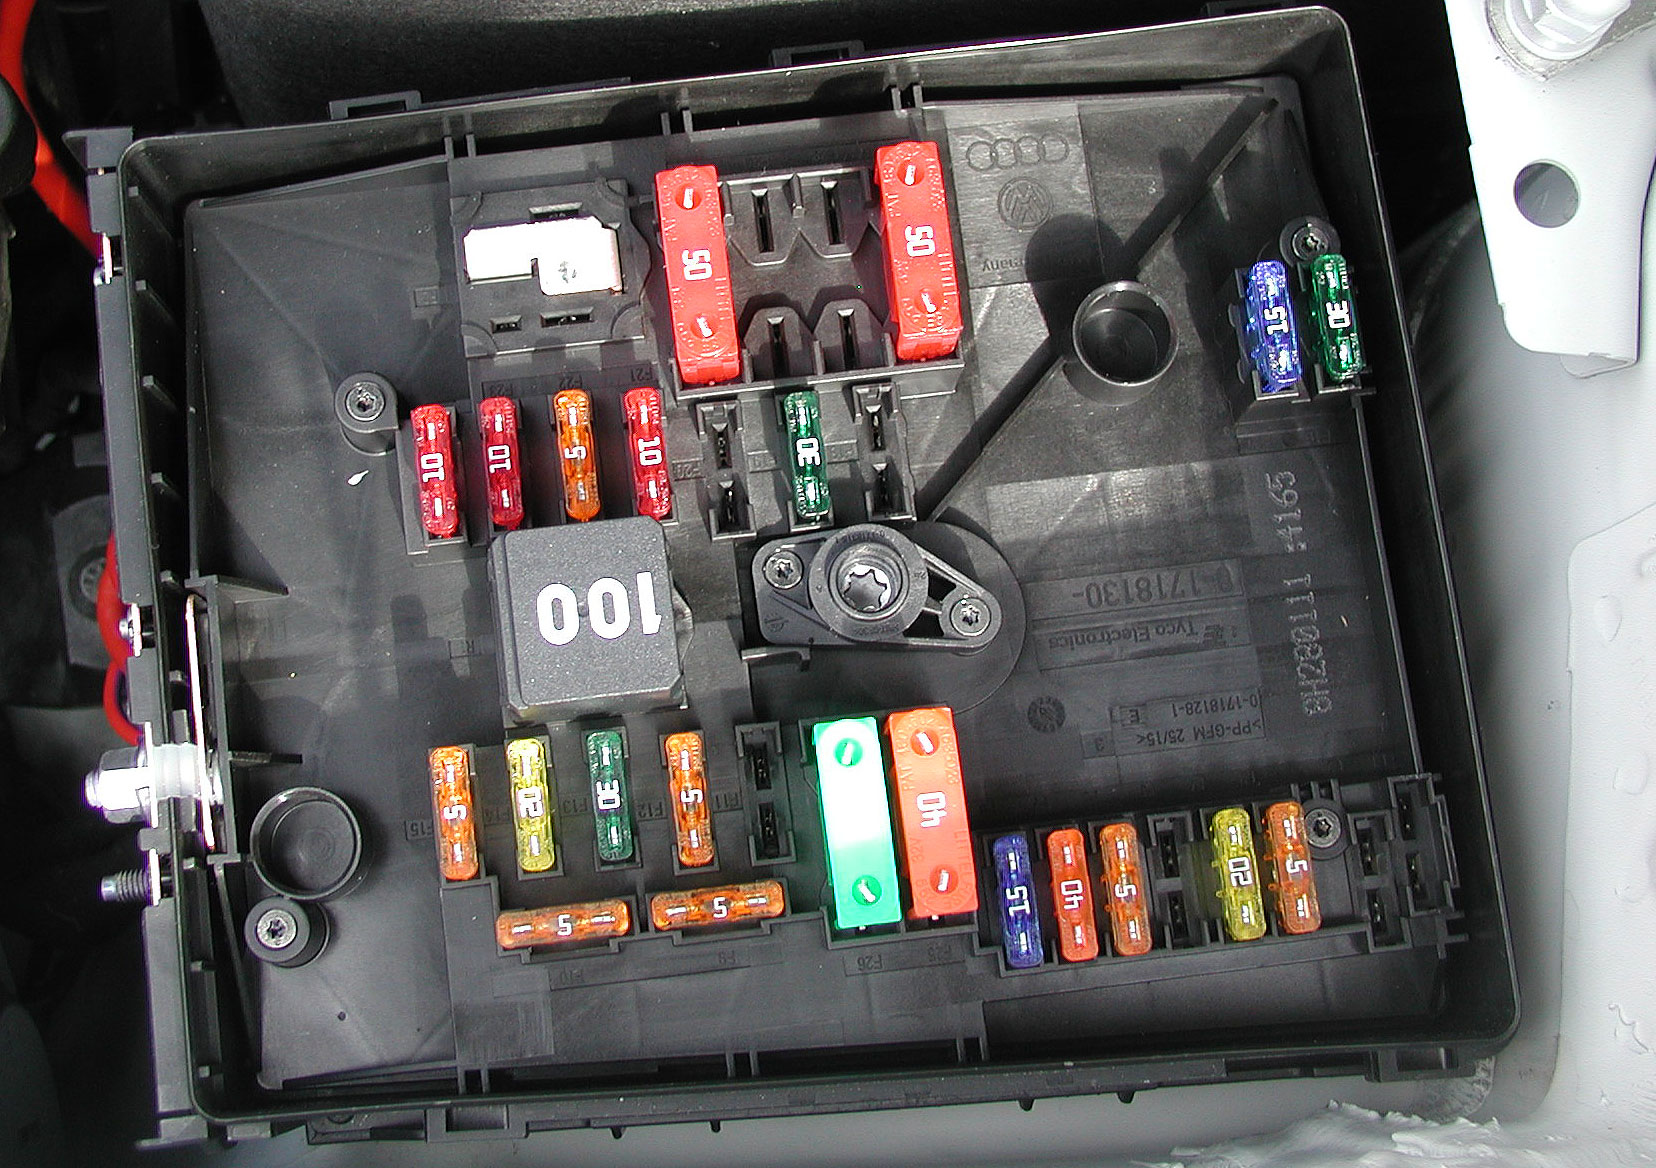 2006 Vw Golf Fuse Box Wiring Diagram Libraries 2012 Jeep Layout Diagrams Scematic2011 Tdi Picture Please